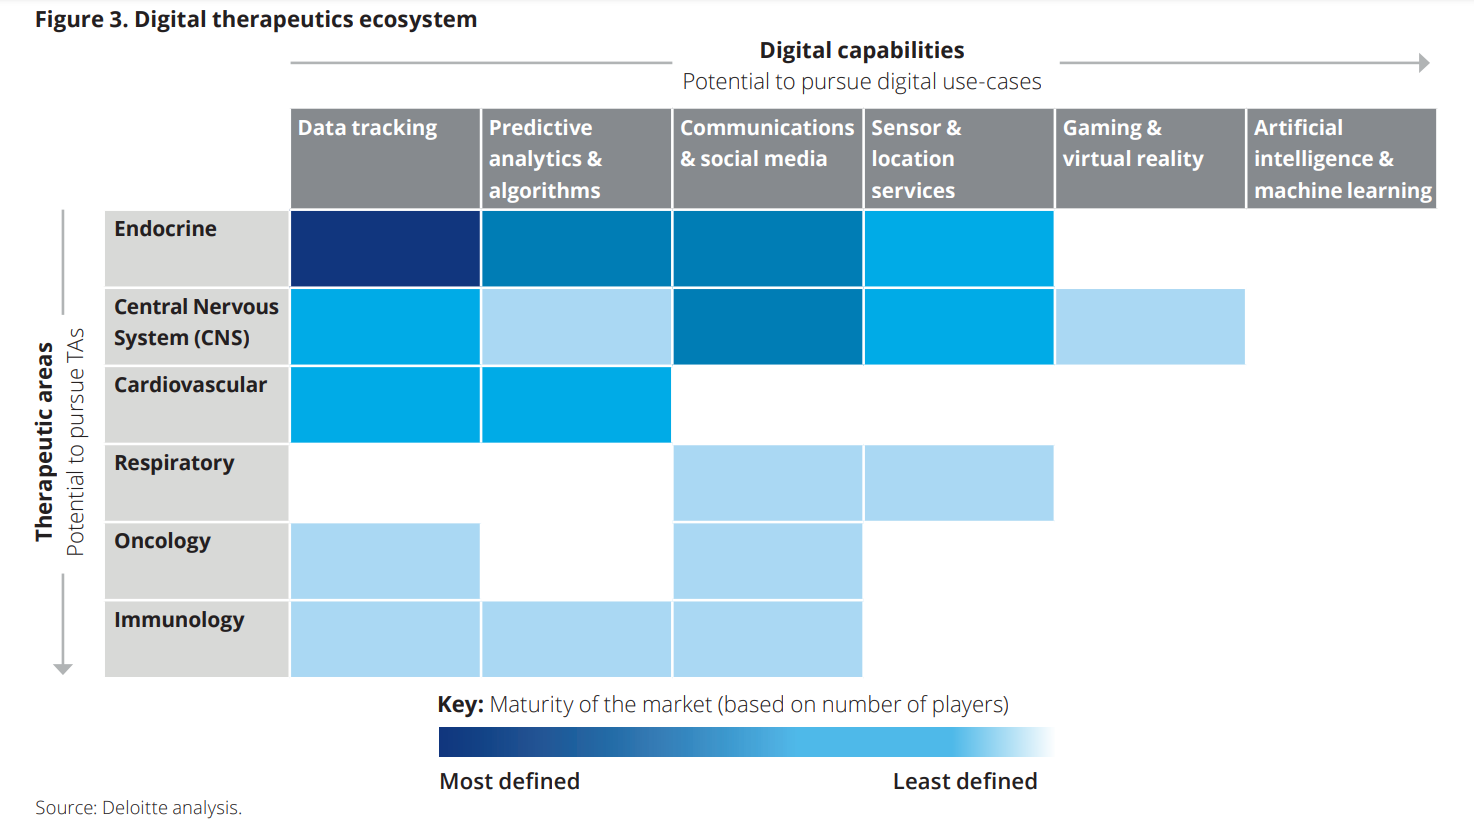 Opportunities the digital therapeutics landscape offers